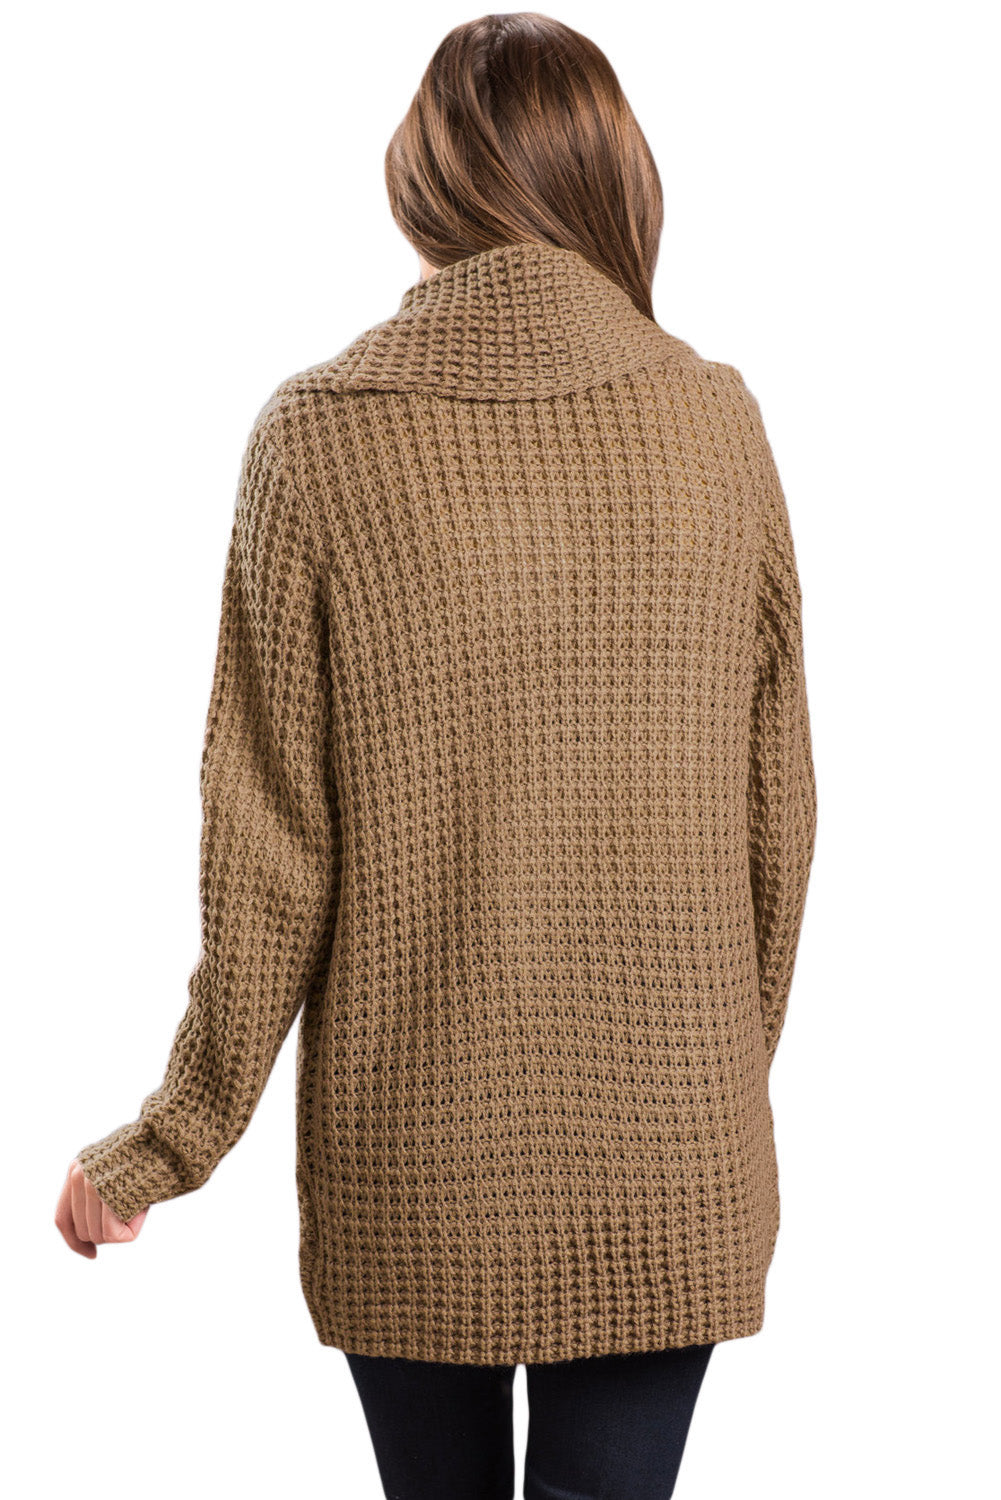 Her Fashion Khaki Buttoned Wrap Cowl Neck Trendy Sweater